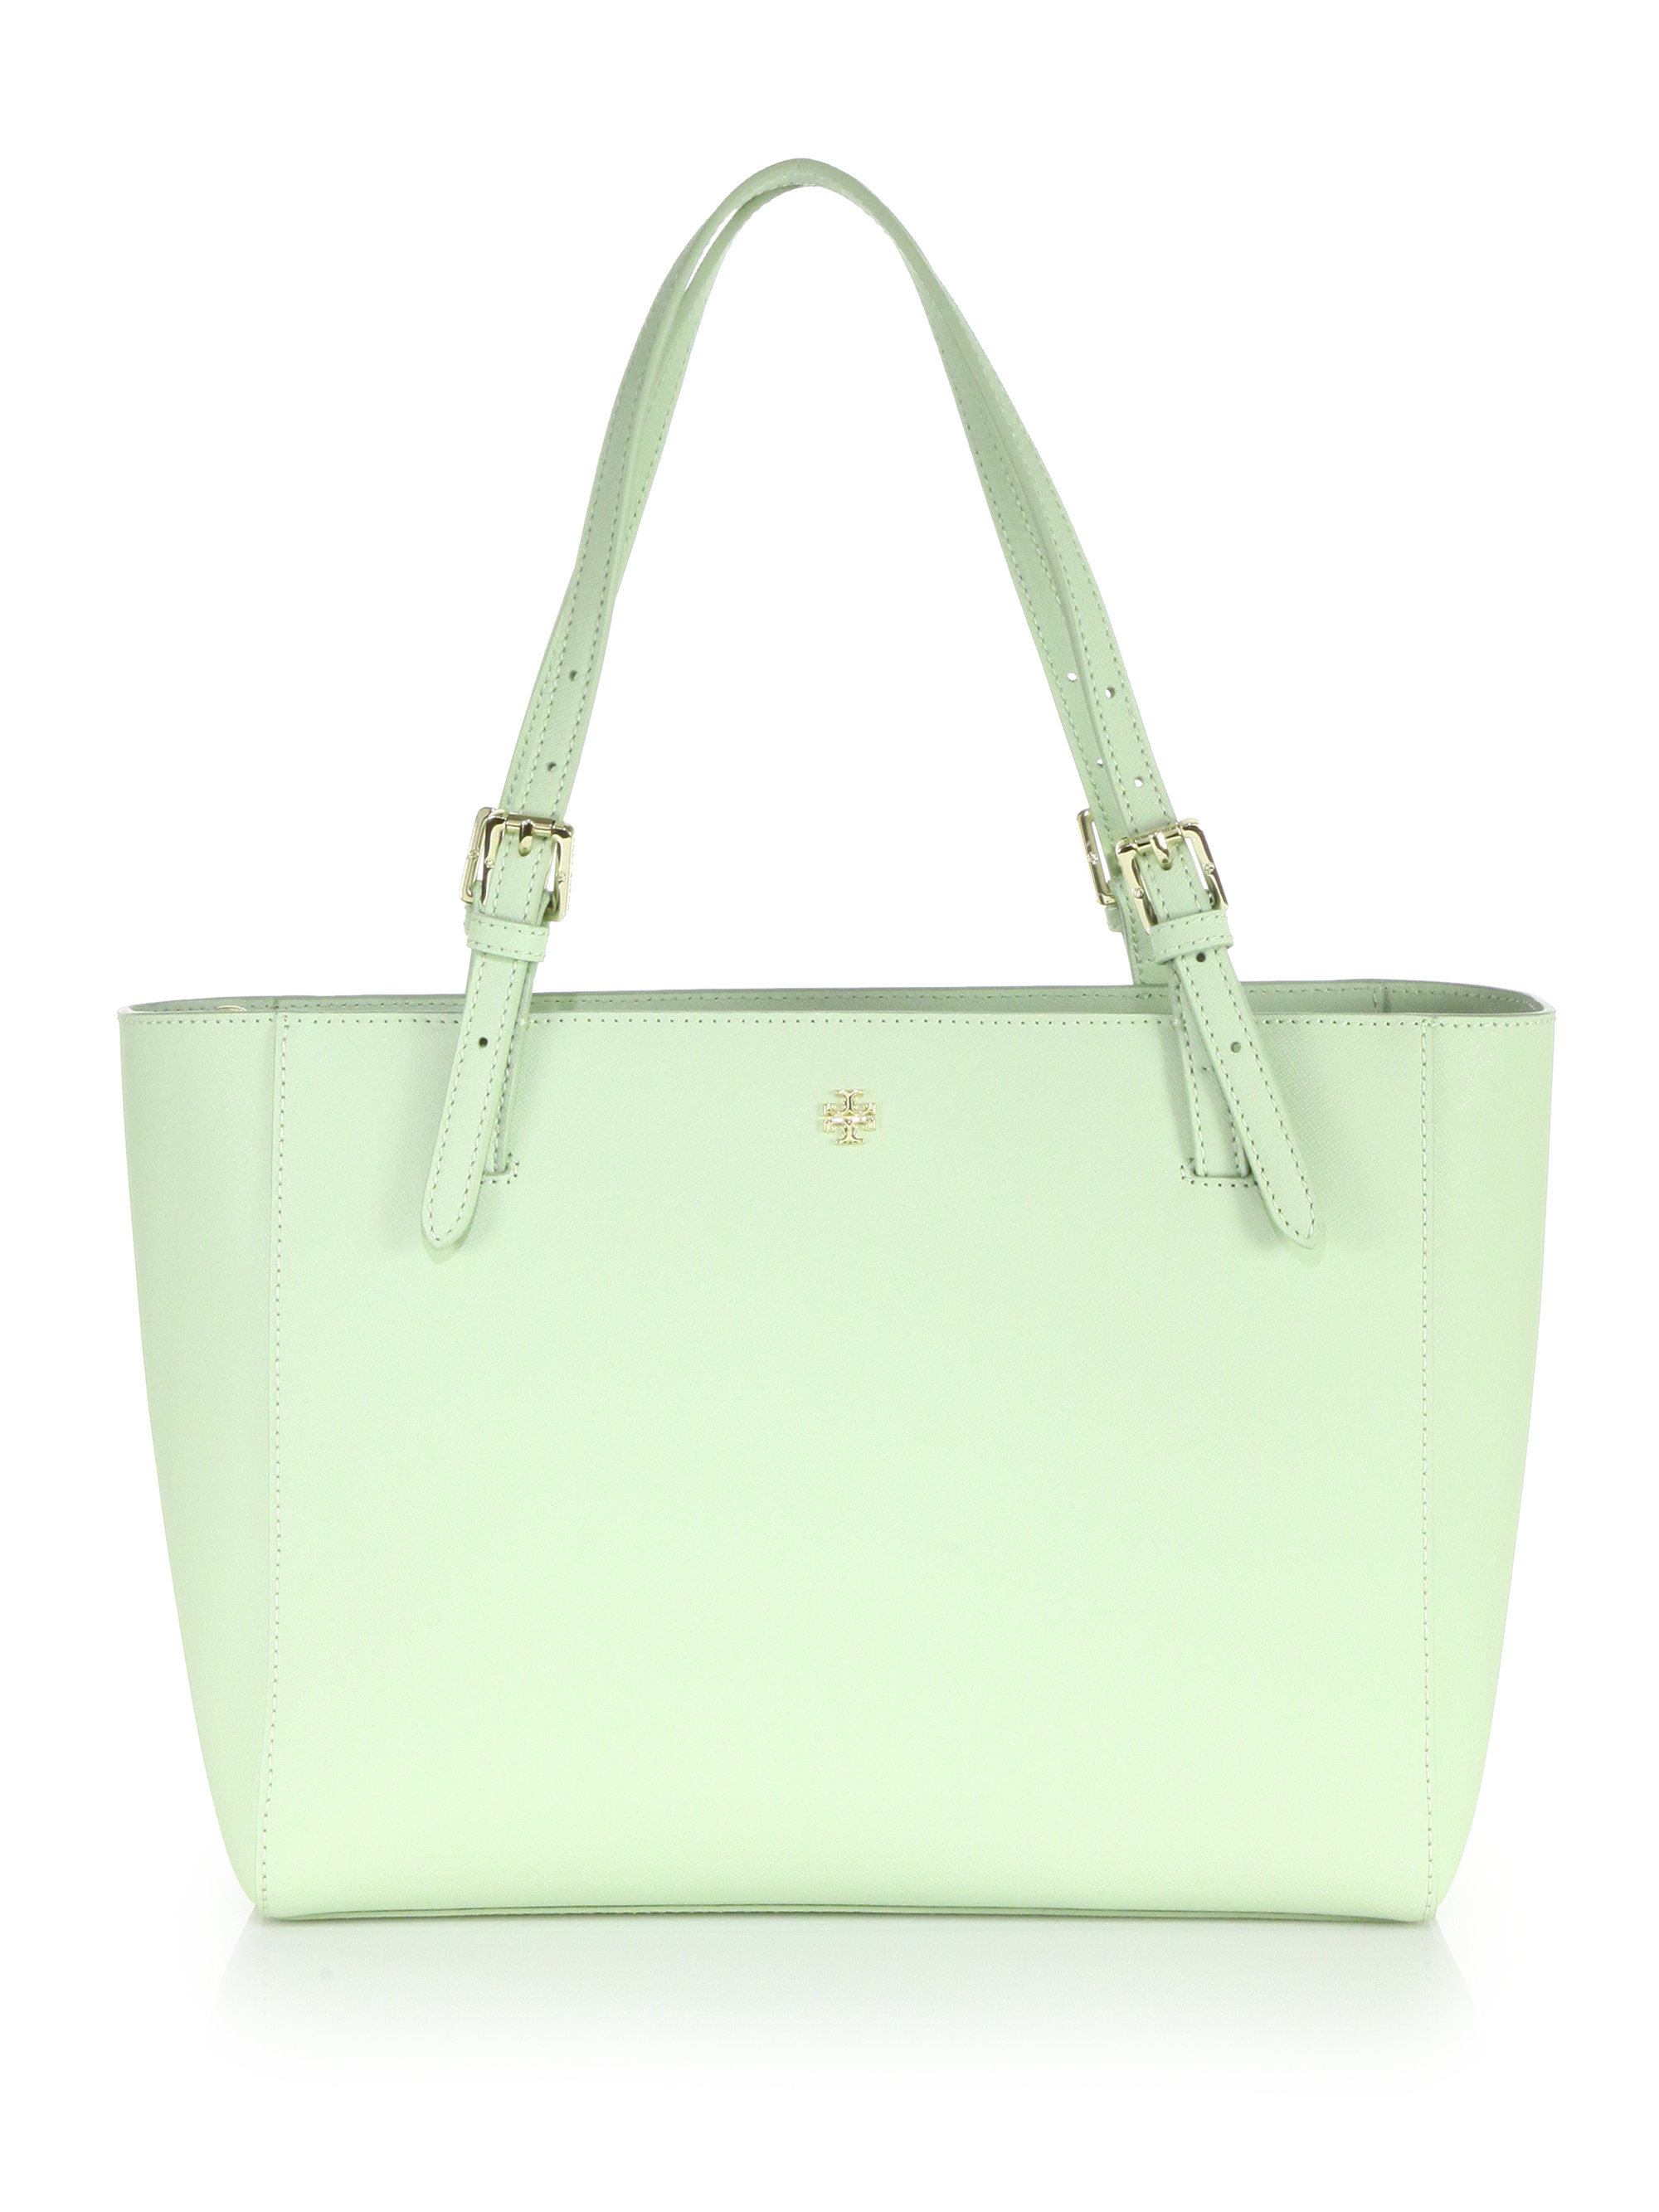 Tory burch York Small Saffiano Leather Tote in Green | Lyst